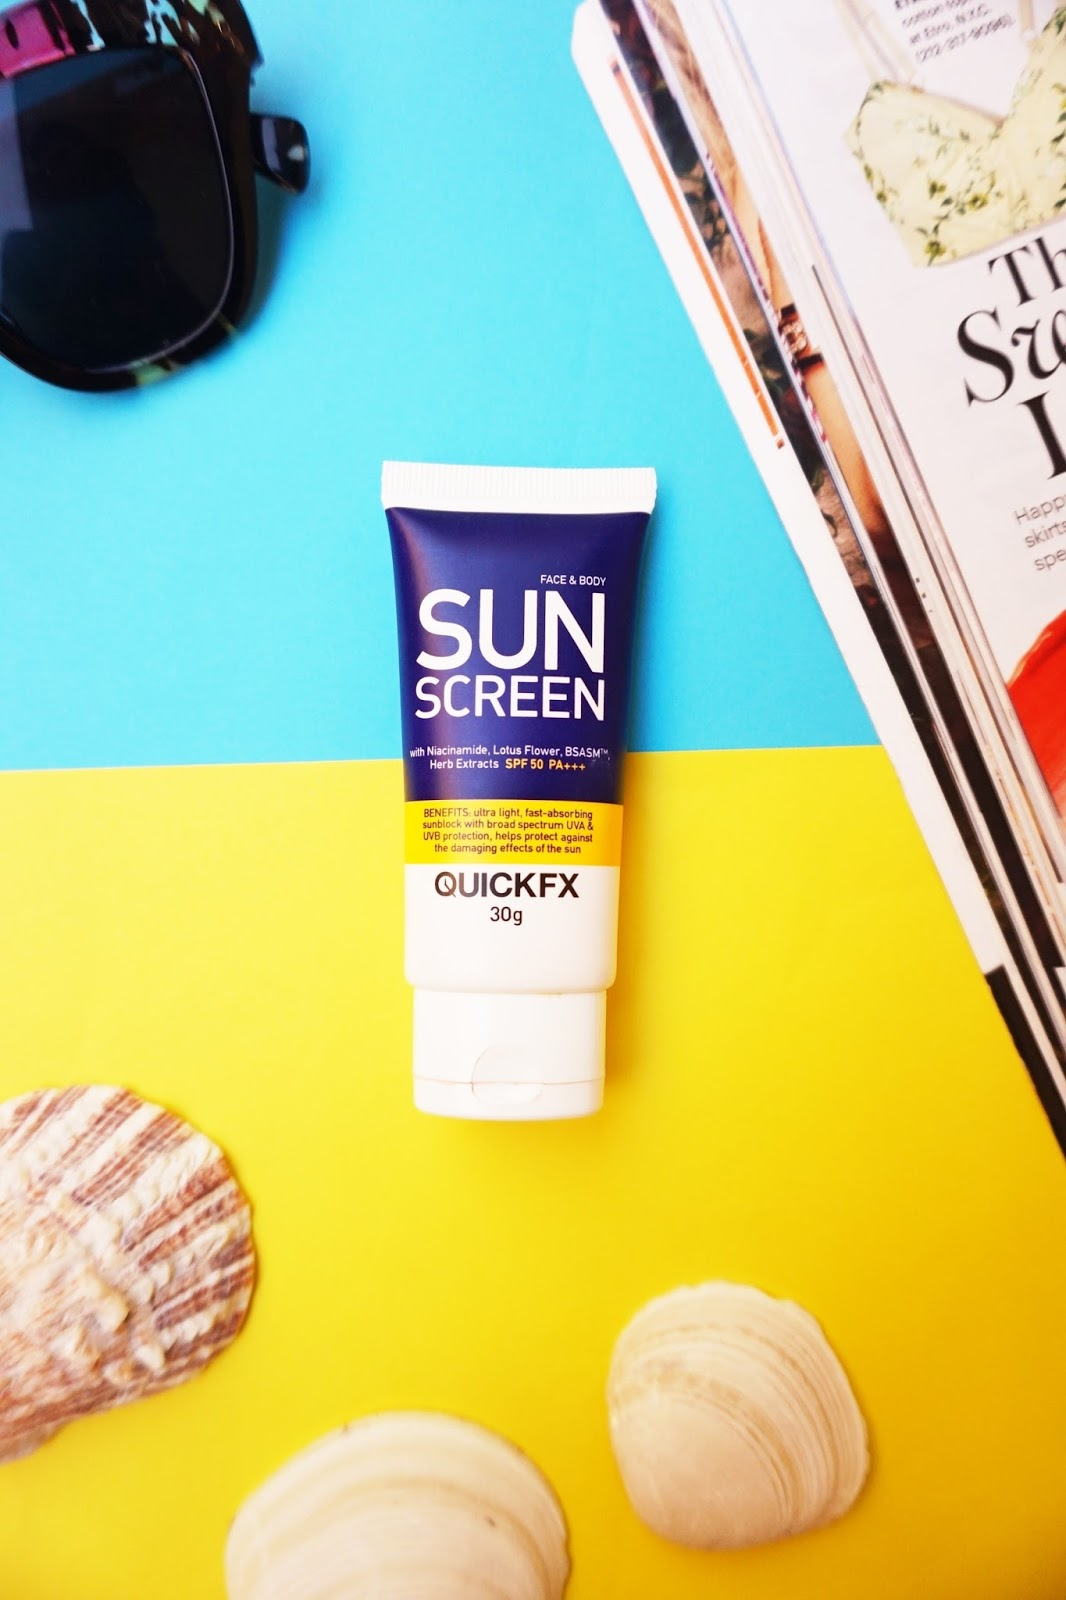 quickfx sunscreen